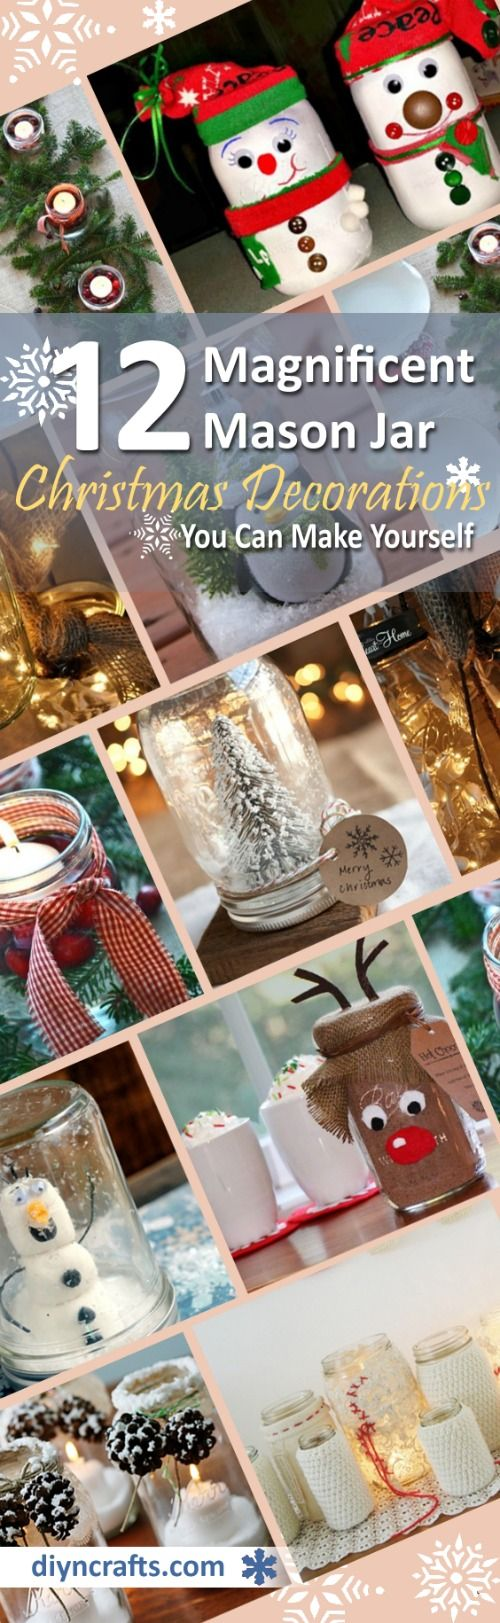 12 Magnificent Mason Jar Christmas Decorations You Can Make Yourself via @vanessacrafting